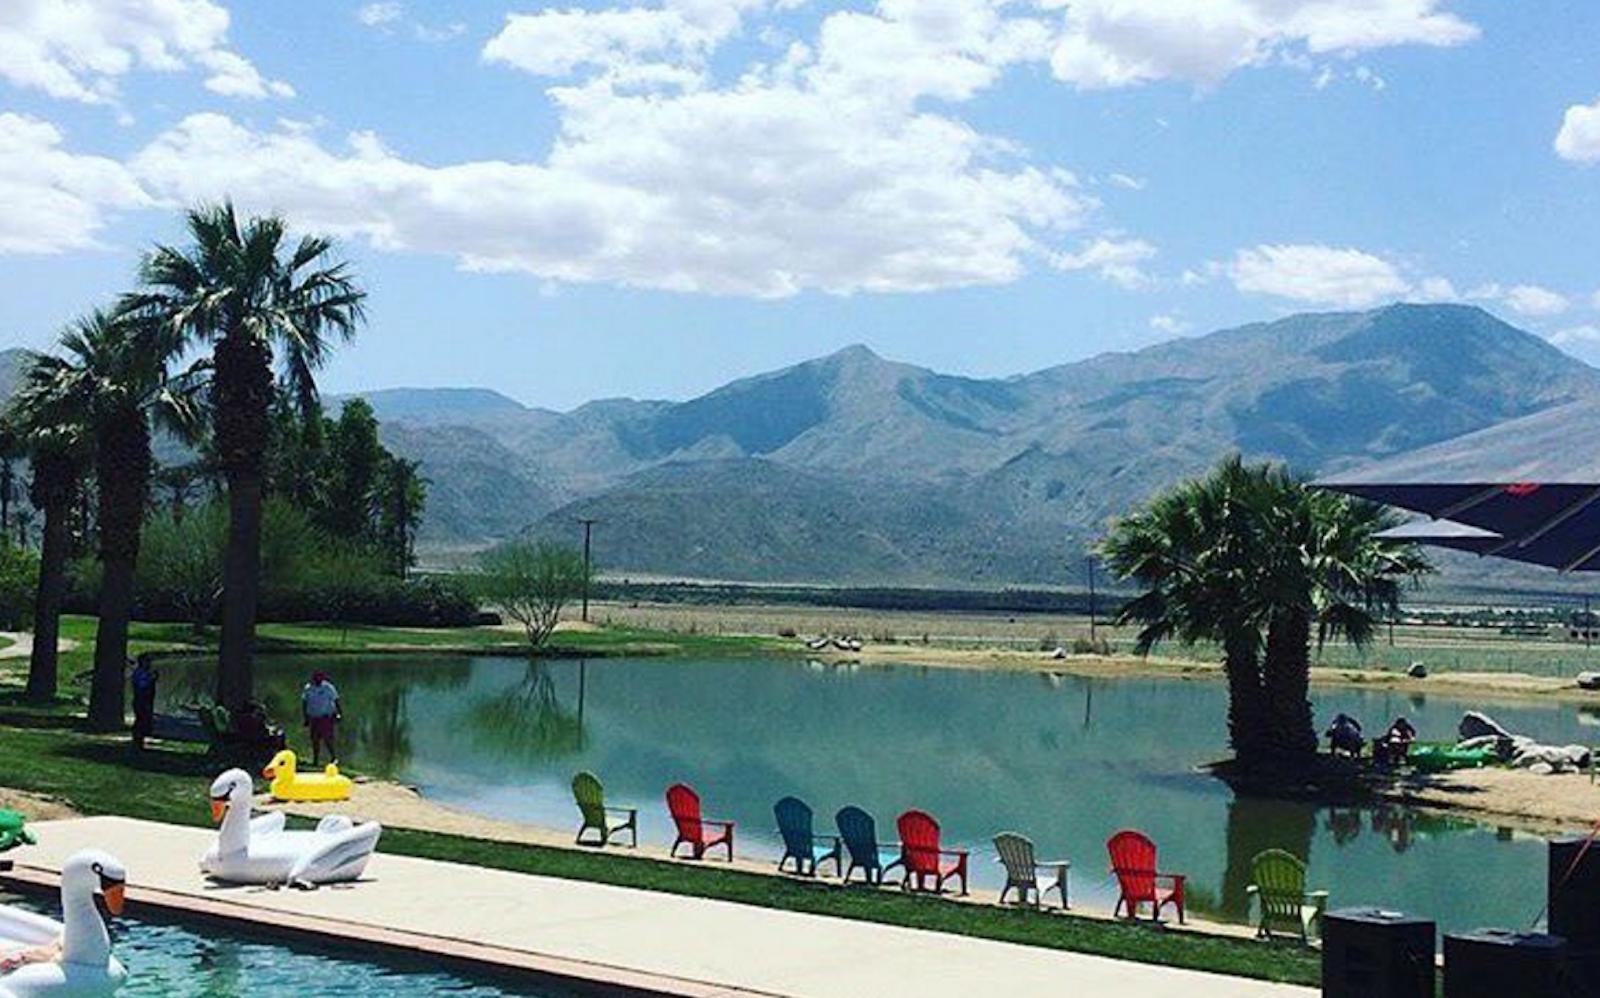 Lake and colorful chairs at Coachella Base Camp